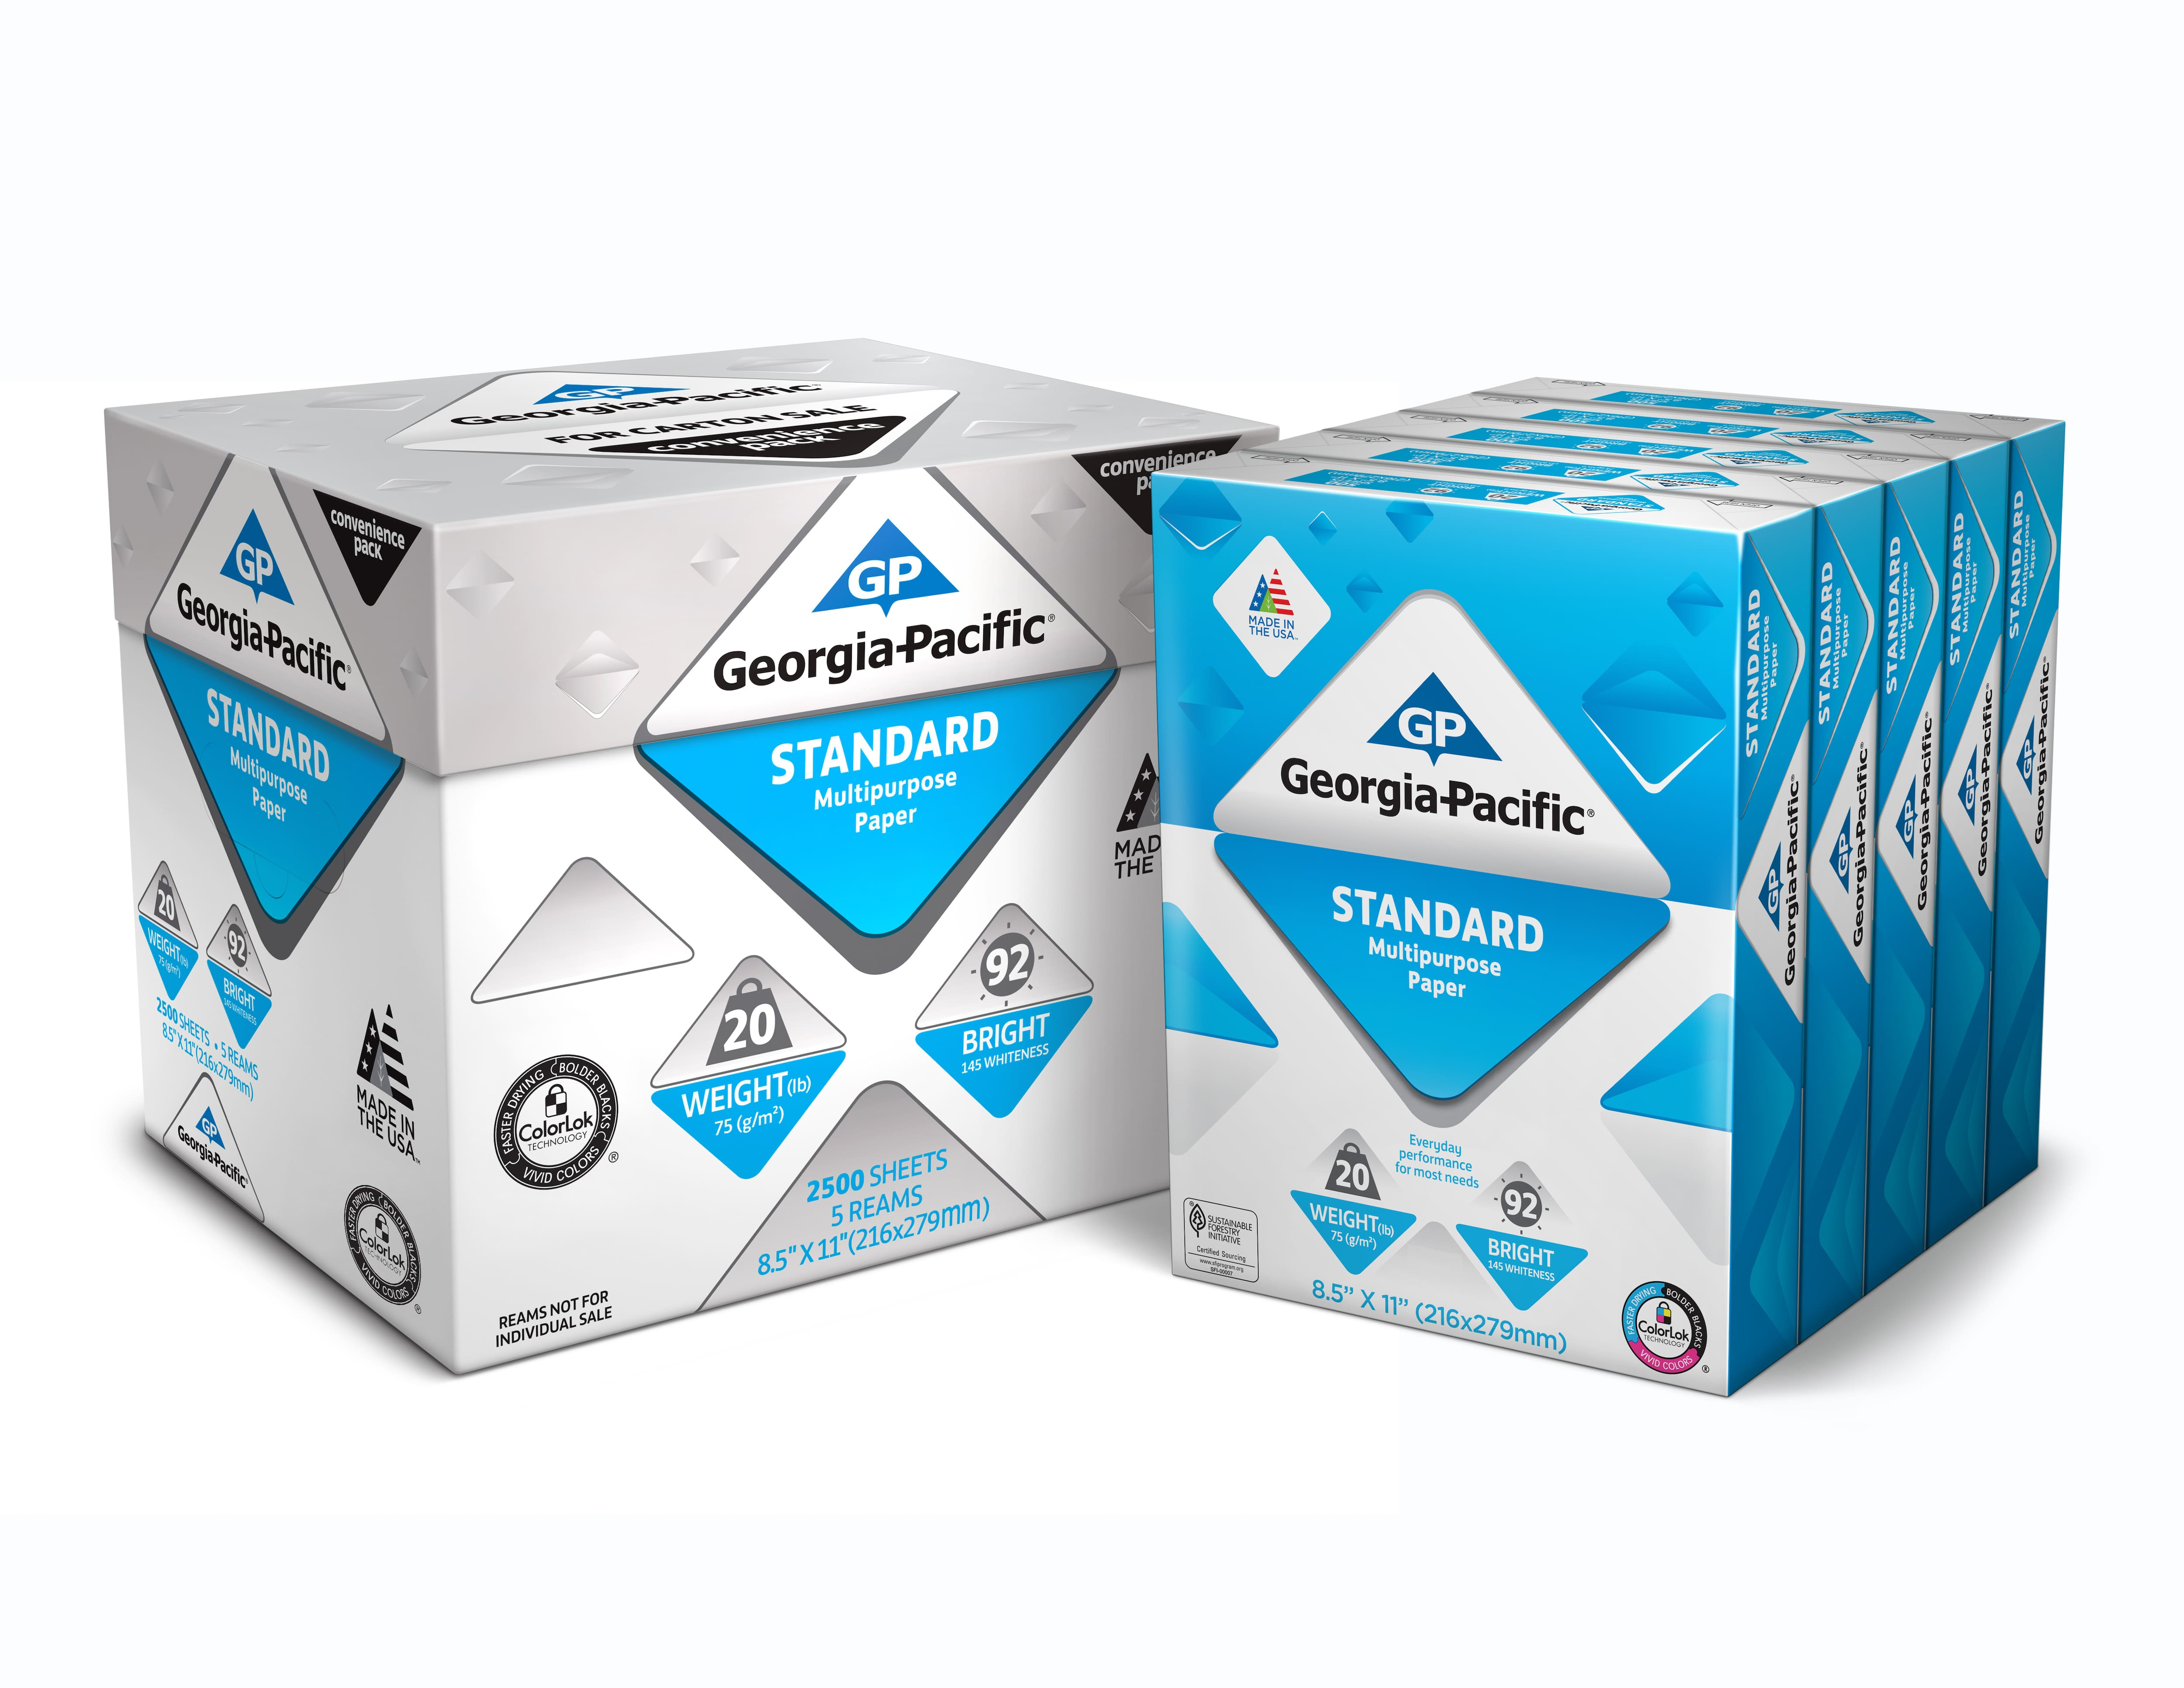 Georgia-Pacific Standard Printer Paper Ream 8.5 x 11, 20lb/92 Bright, 2500 Sheets Walmart YMMV $4.50 $4.49